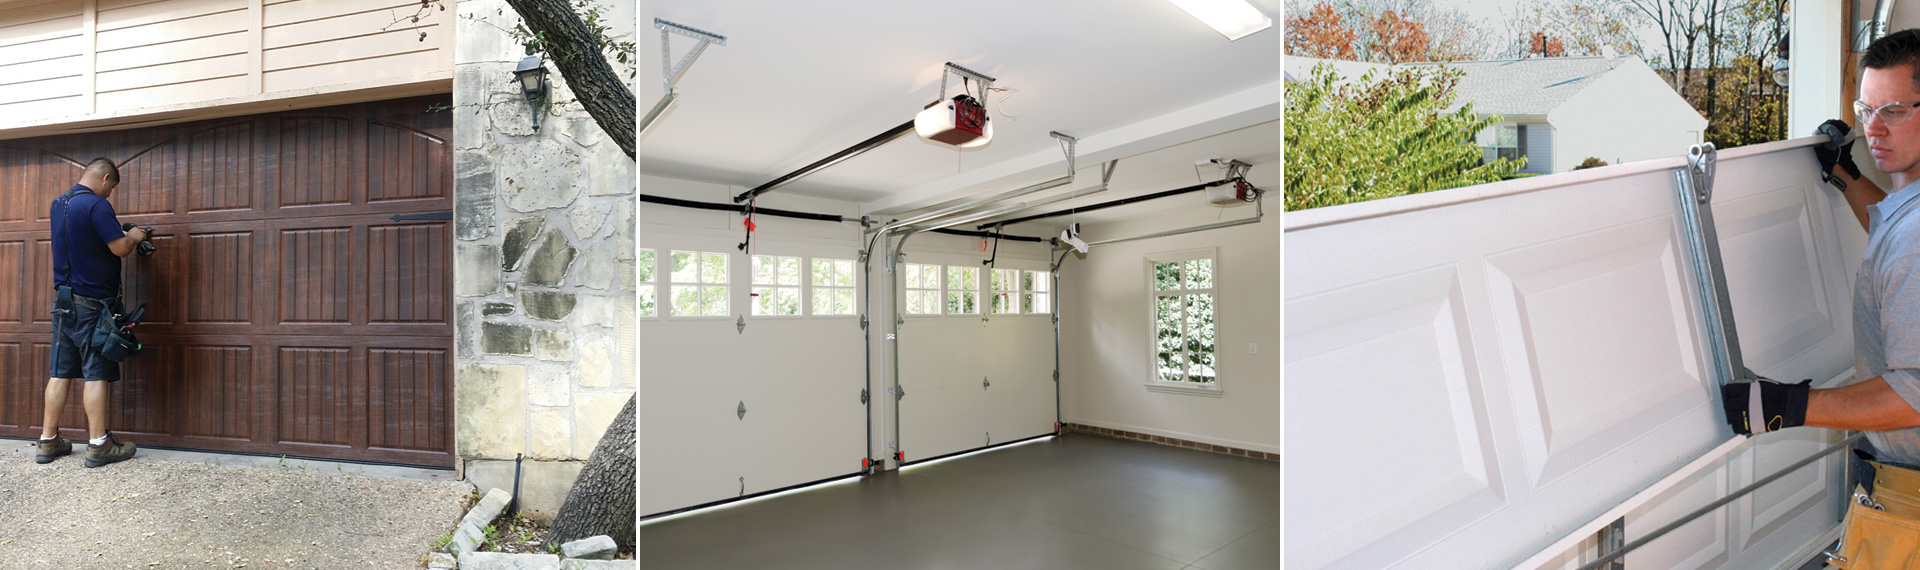 All Garage Door Services Clifton Heights PA